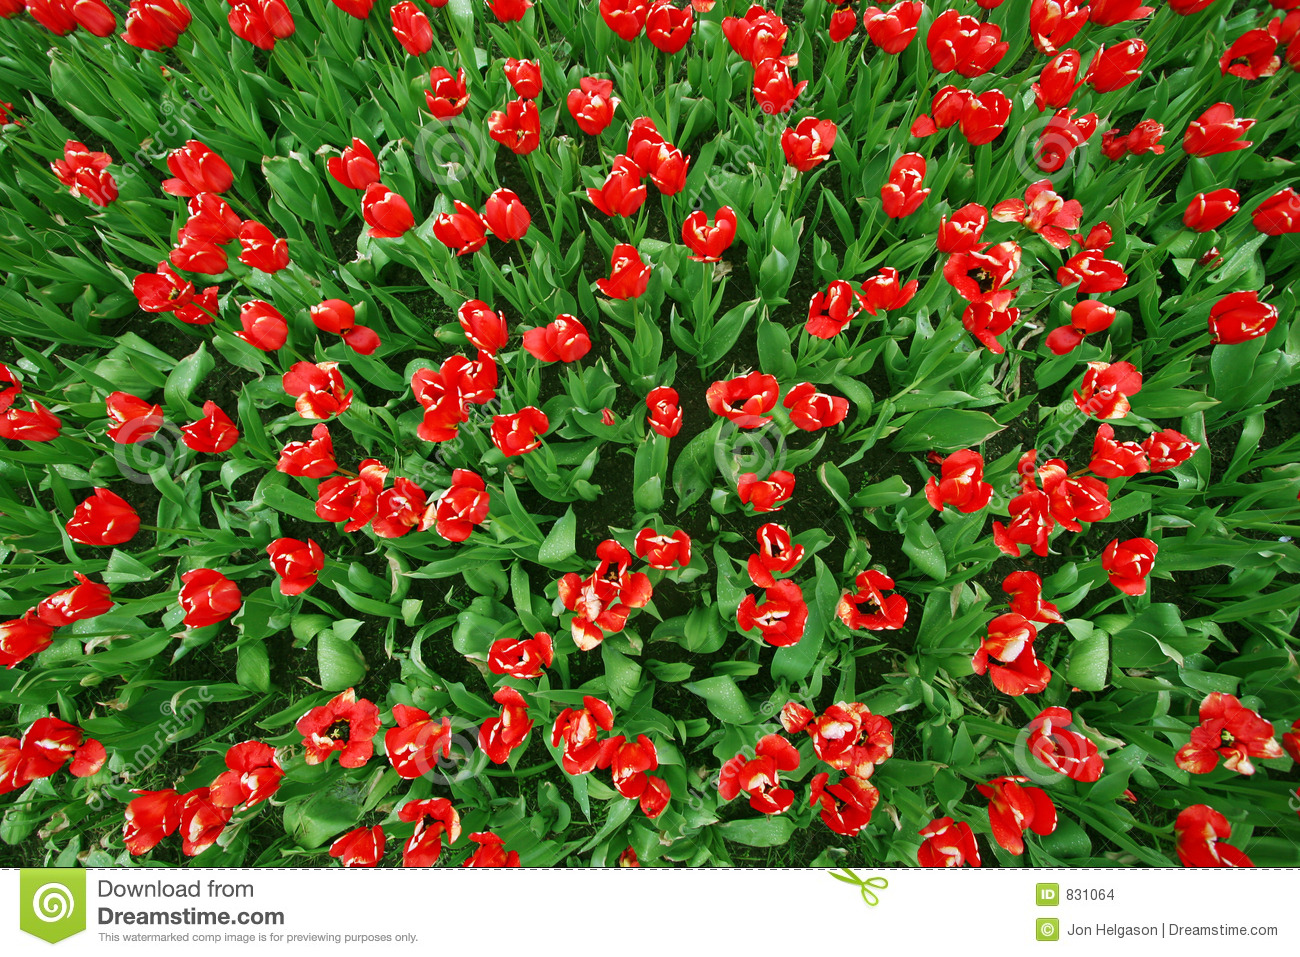 Red tulips Birds view